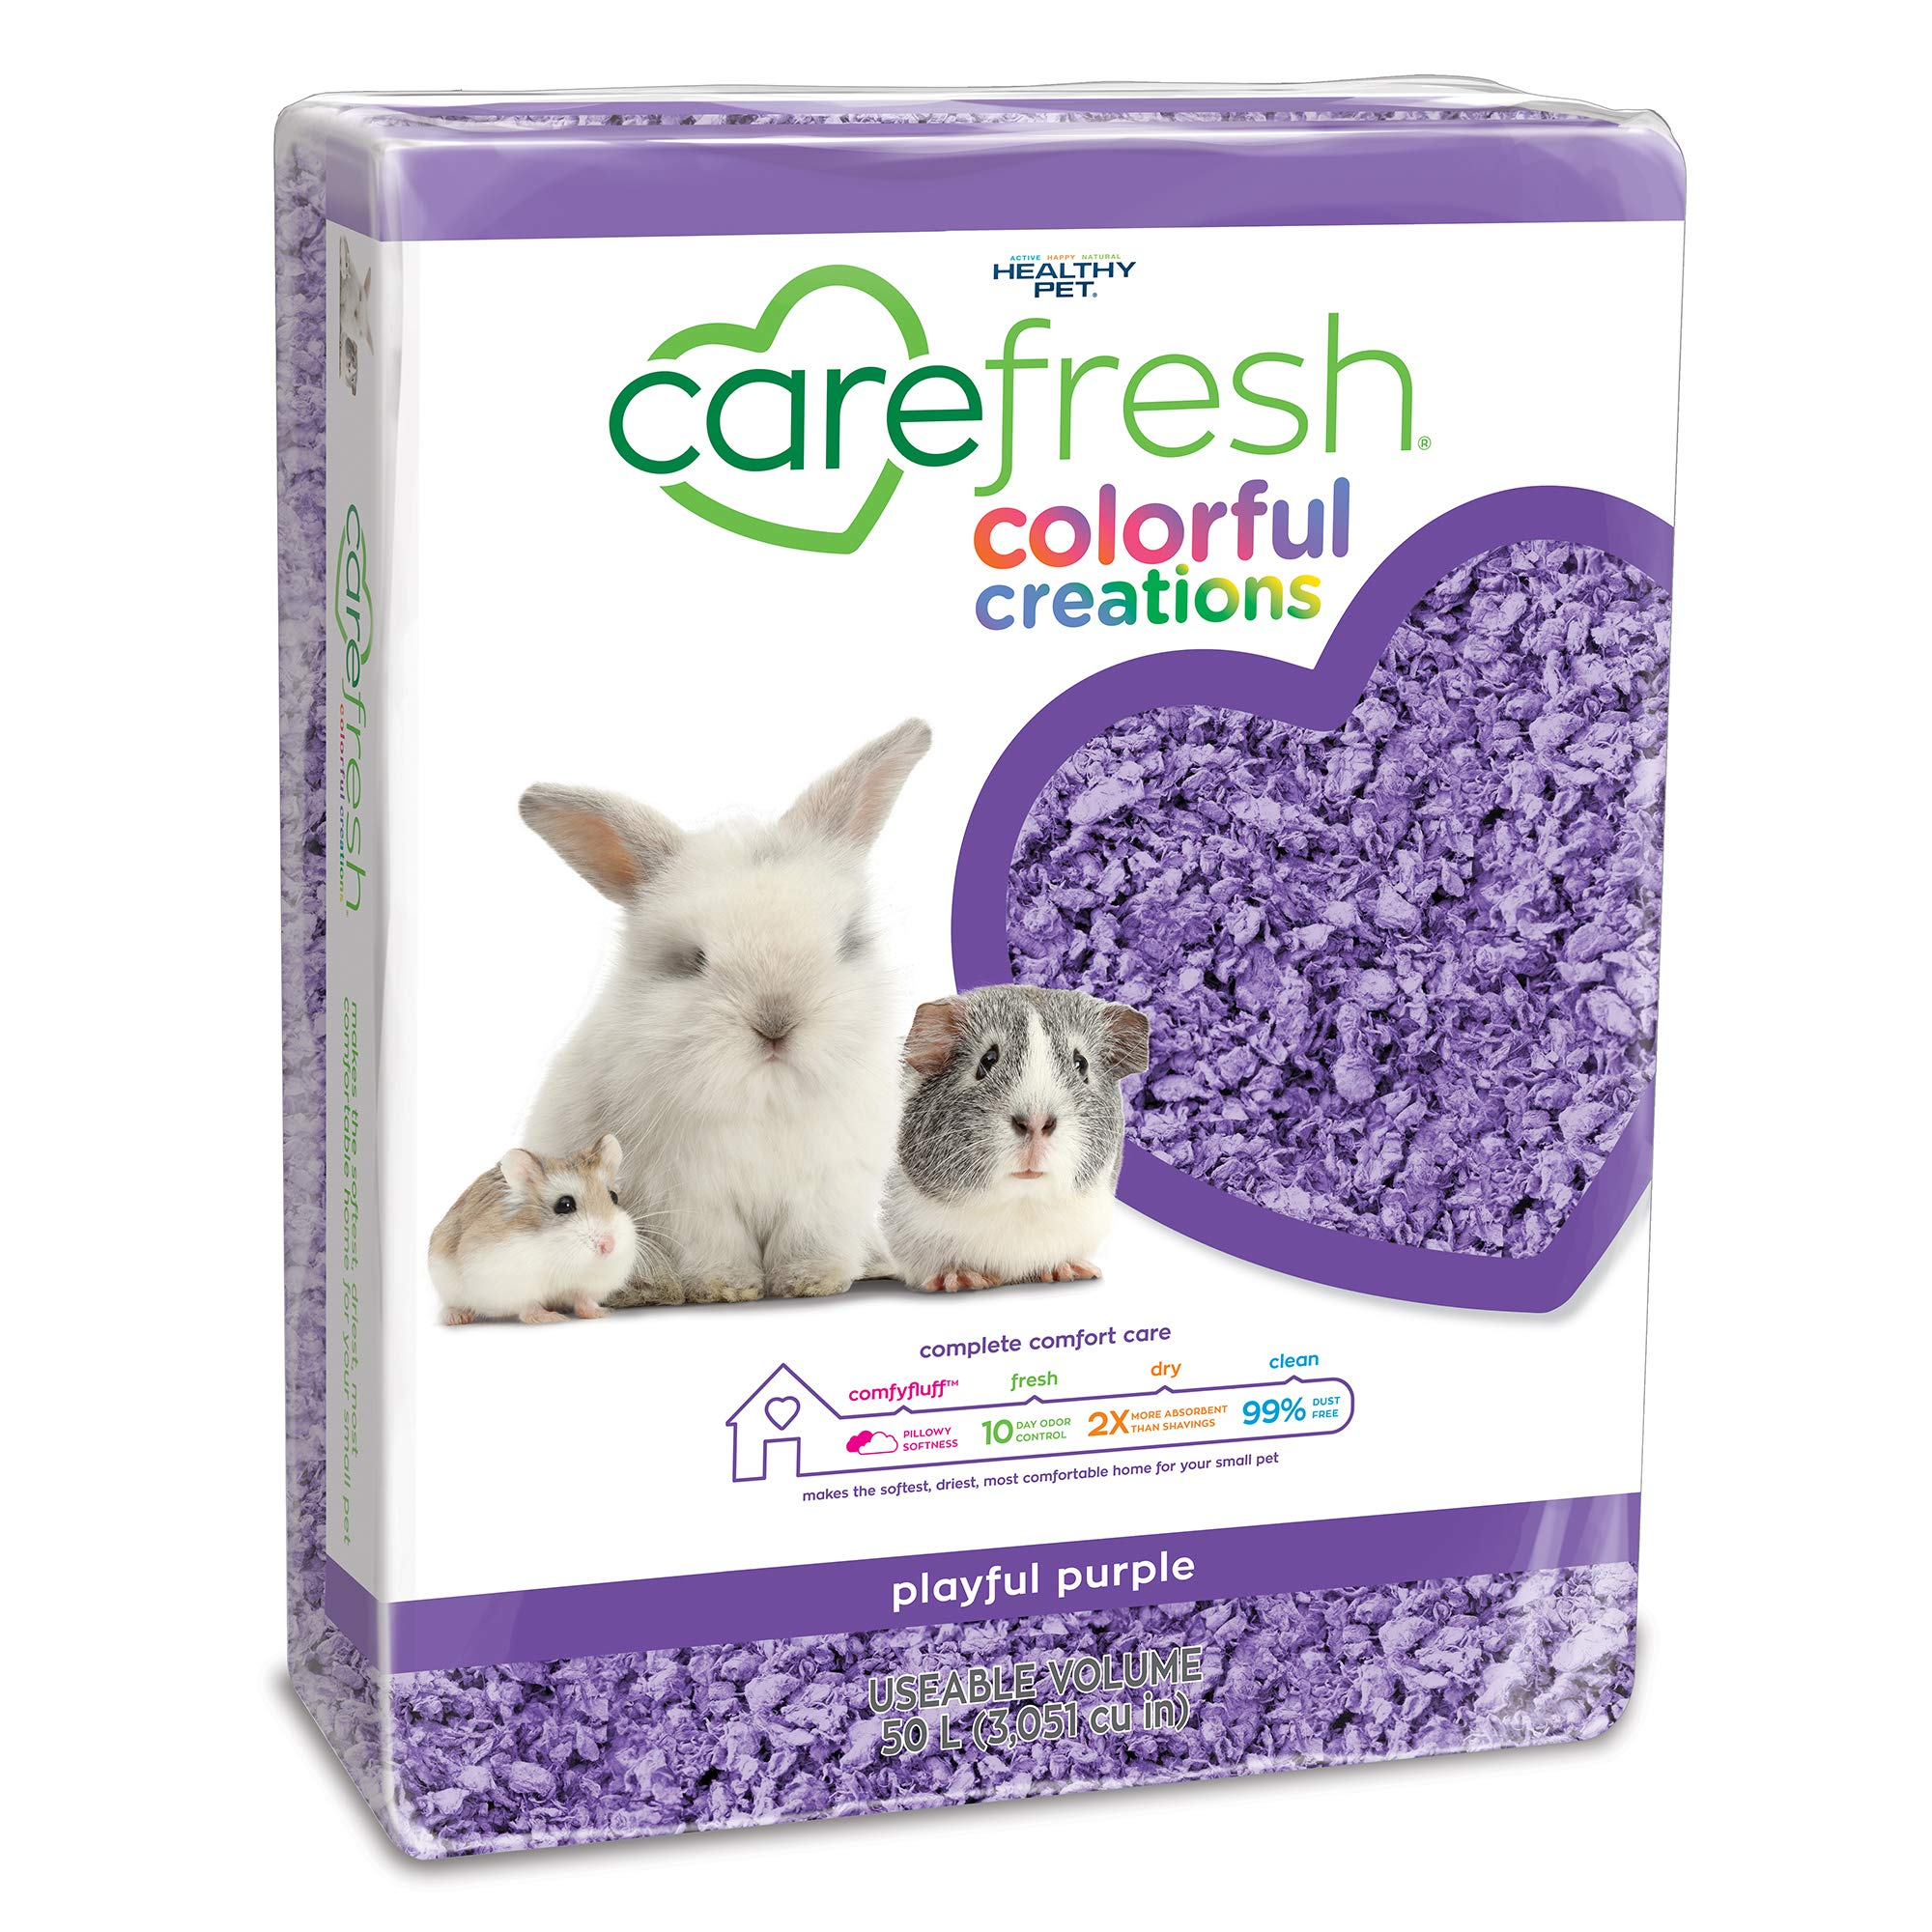 Carefresh Playful Purple Colorful Creations Small pet Bedding, 50L